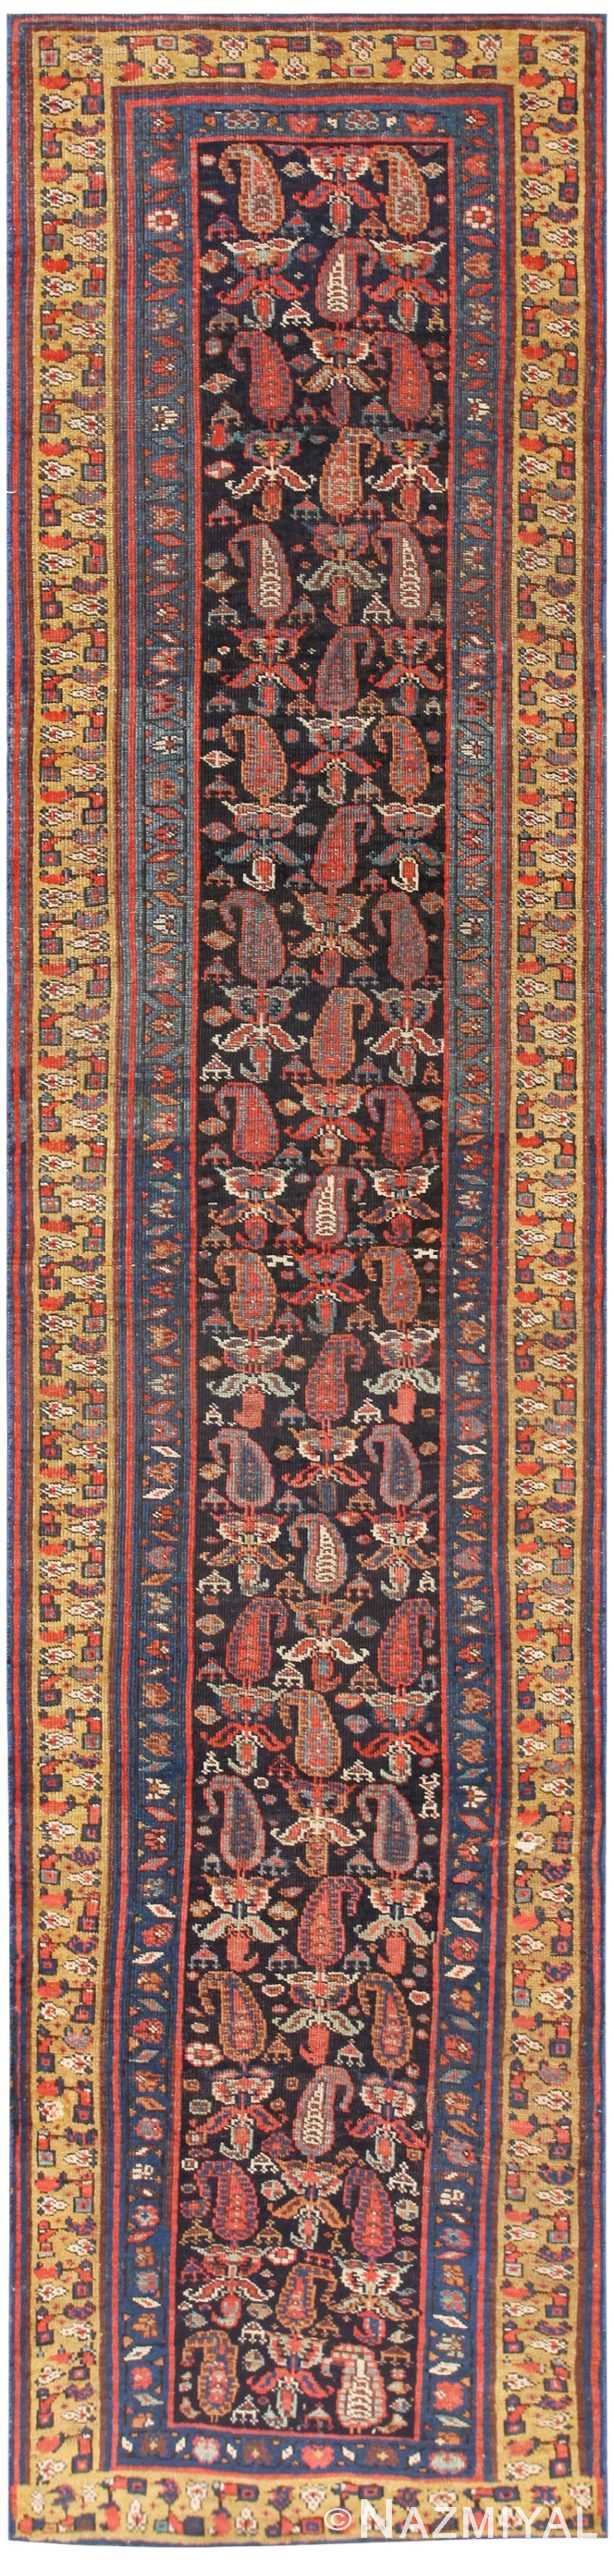 Antique Bidjar Persian Runner Rug 50280 Nazmiyal